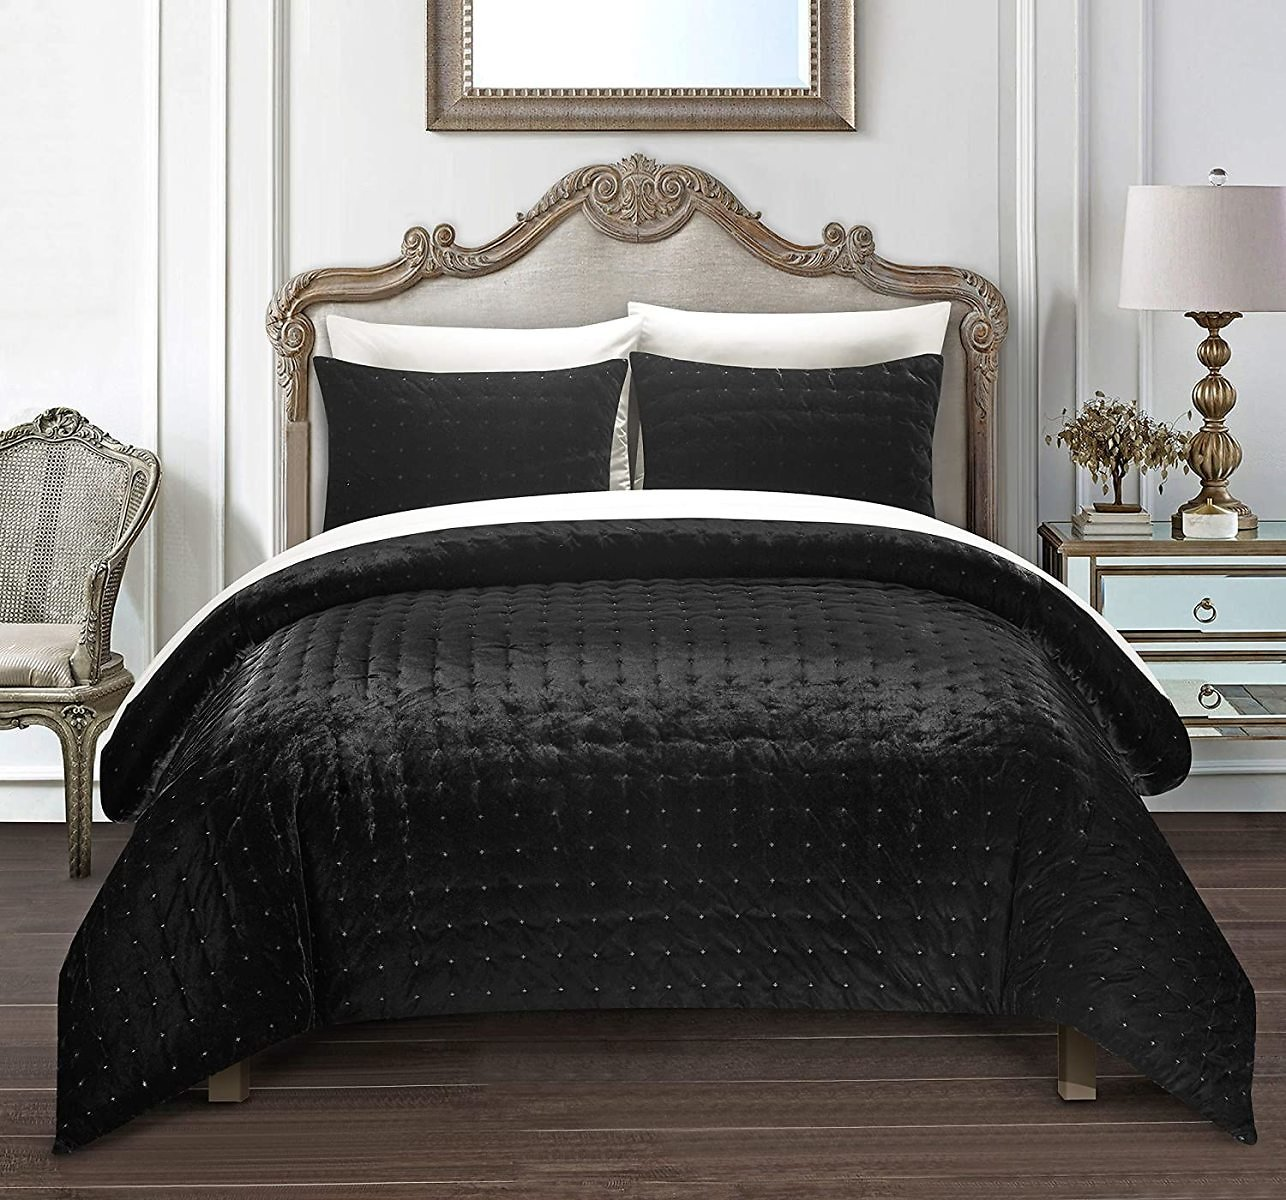 Chic Home Chyna 3-Piece King Comforter Se Luxurious Hand Stitched Velvet Bedding - Decorative Pillow Shams Included, Black